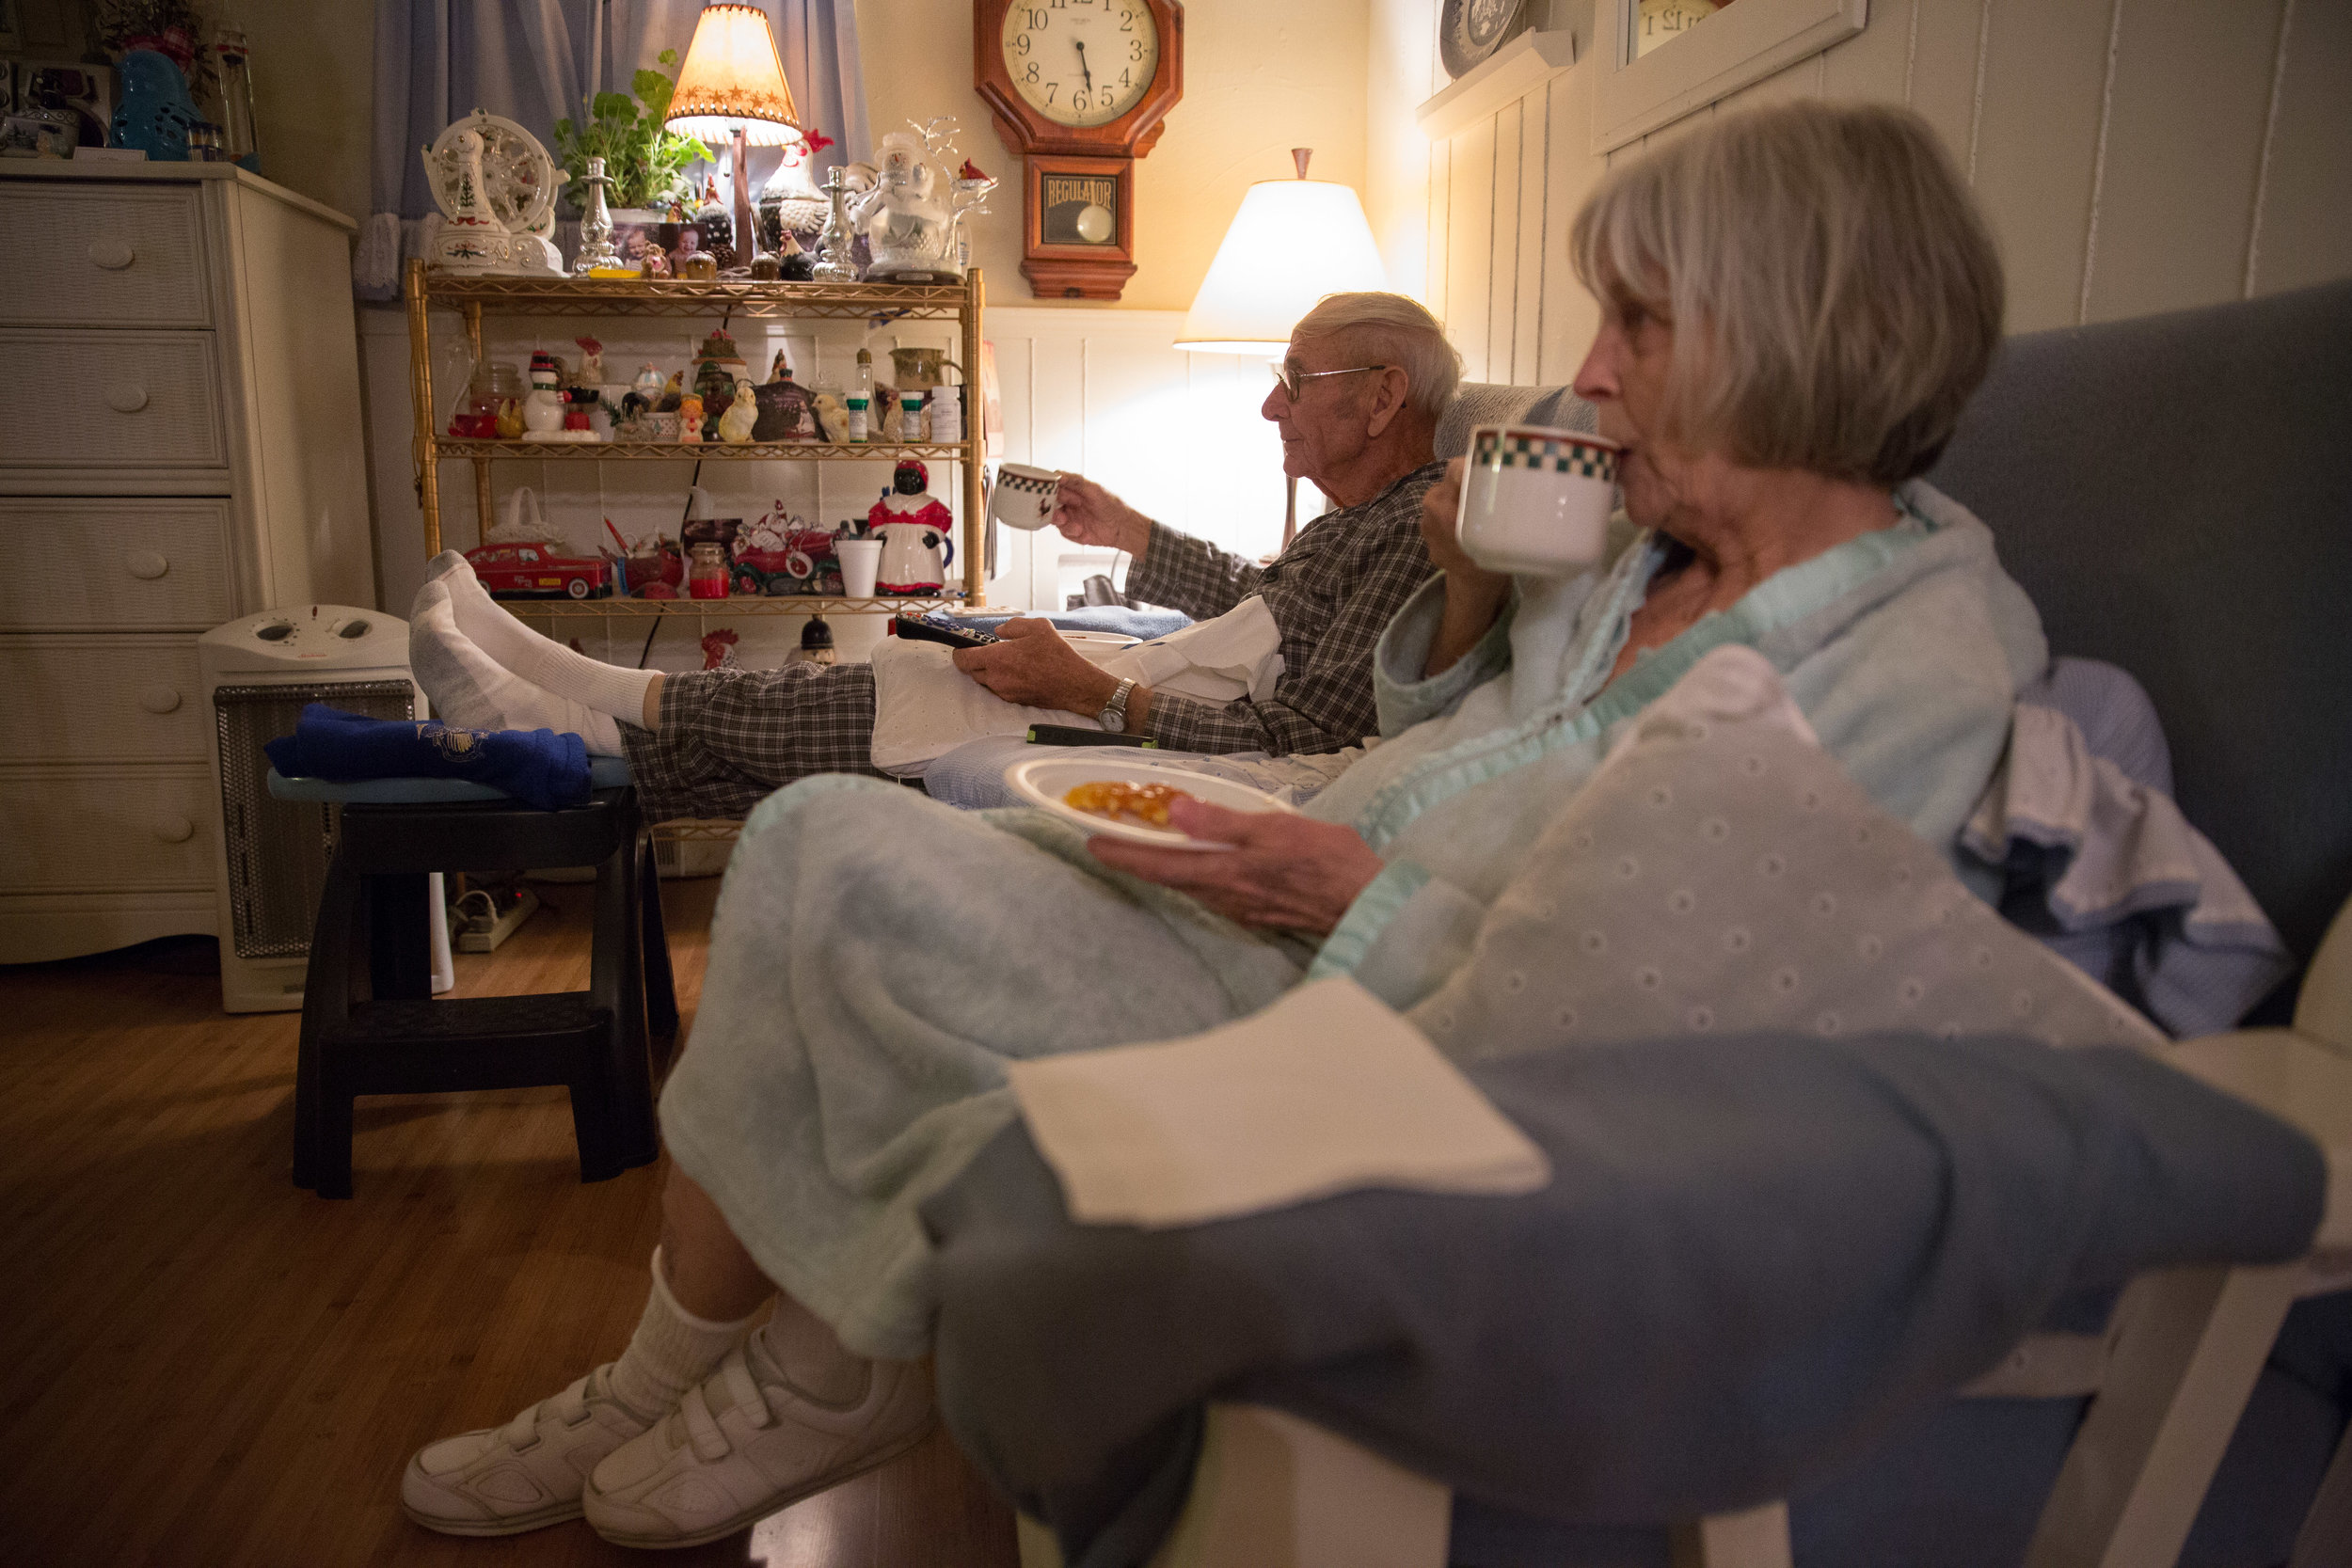 Carl and his wife Ruth just celebrated their 60th wedding anniversary. Carl usually wakes up at 2 a.m. and says morning is his favorite time of the day. Ruth isn't able to cook much anymore because she has Alzheimer's. But at 5 a.m. each morning, she toasts a single Eggo waffle with butter and honey for Carl and for herself.